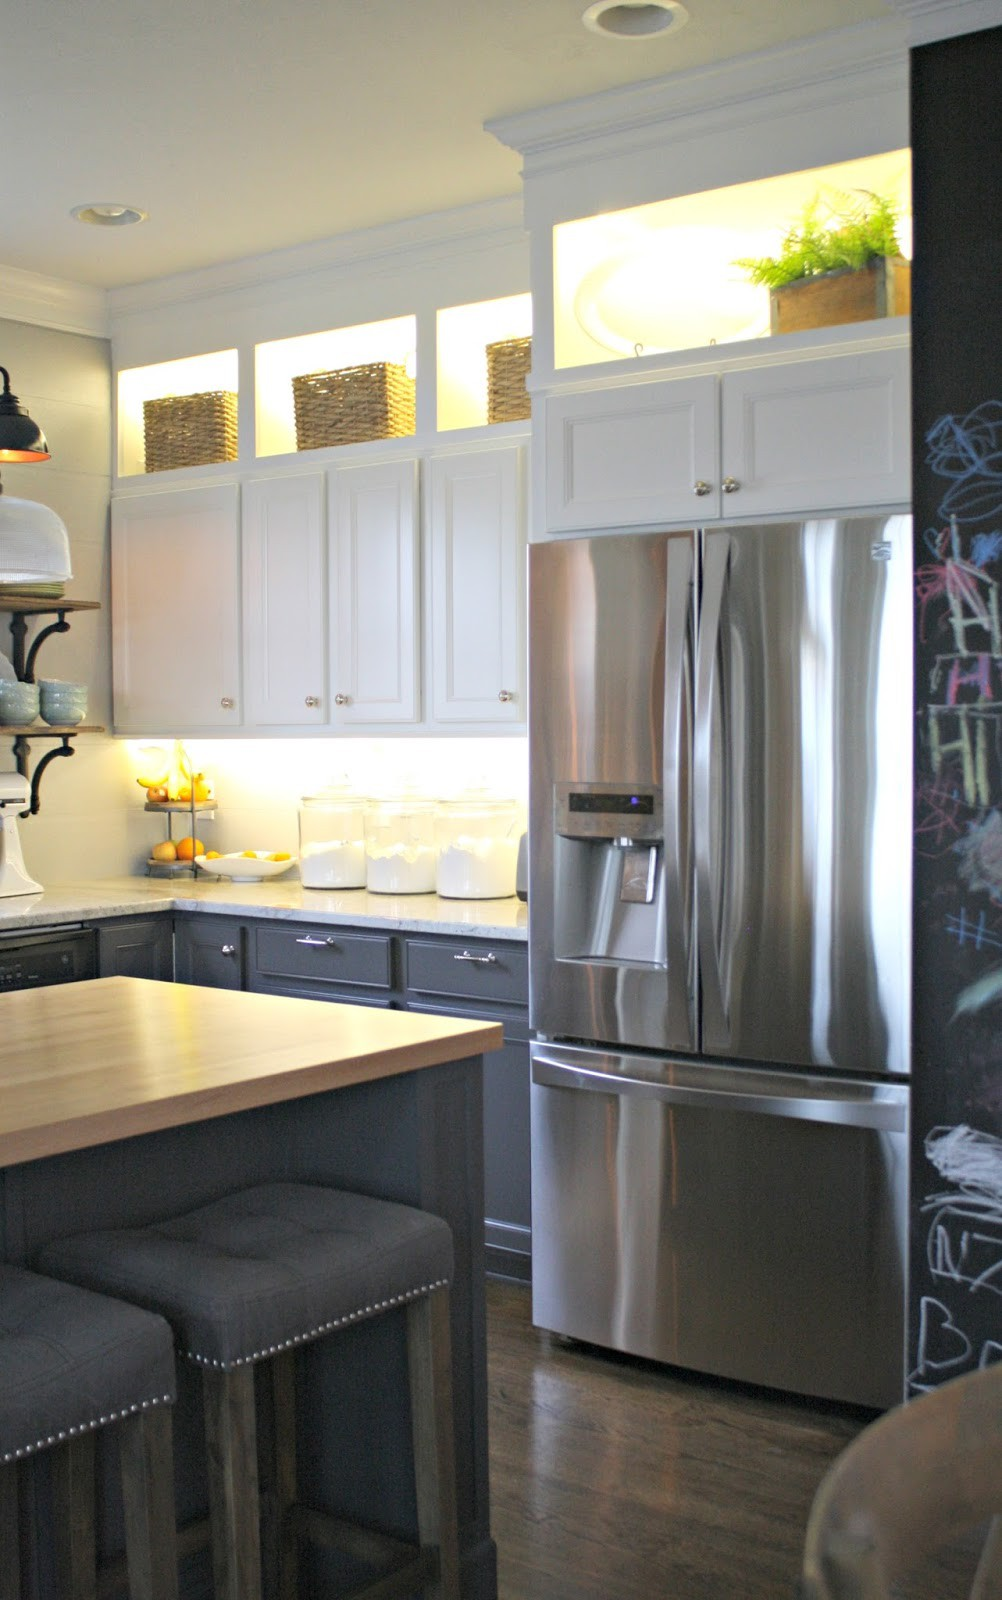 25 Diy Kitchen Cabinet Ideas That Are Beautiful